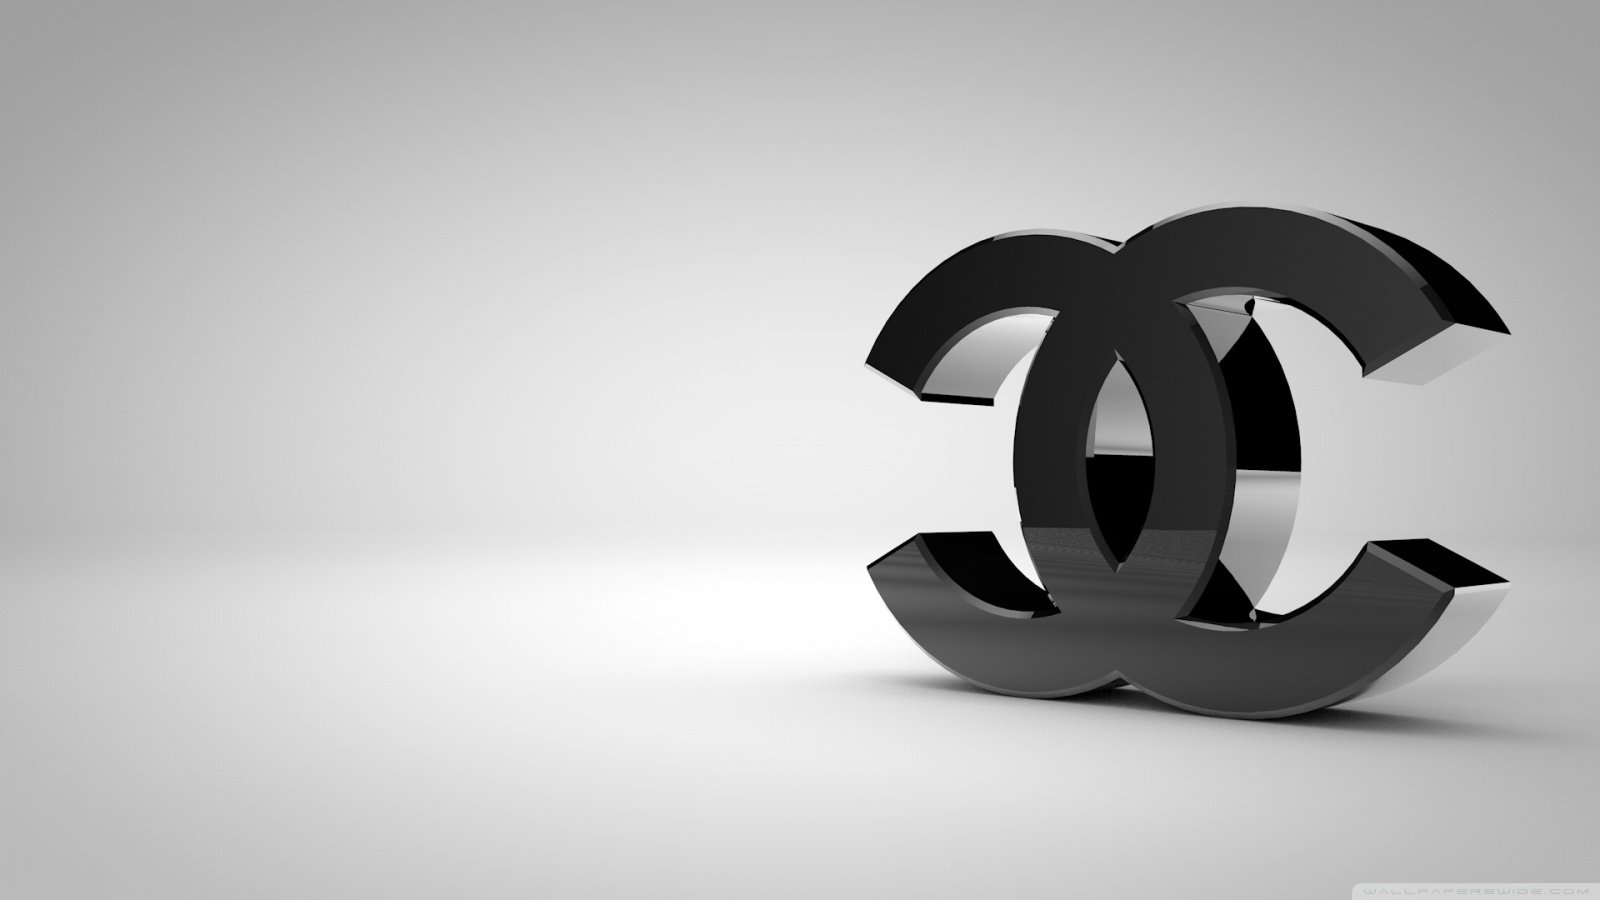 5 Chanel HD Wallpapers